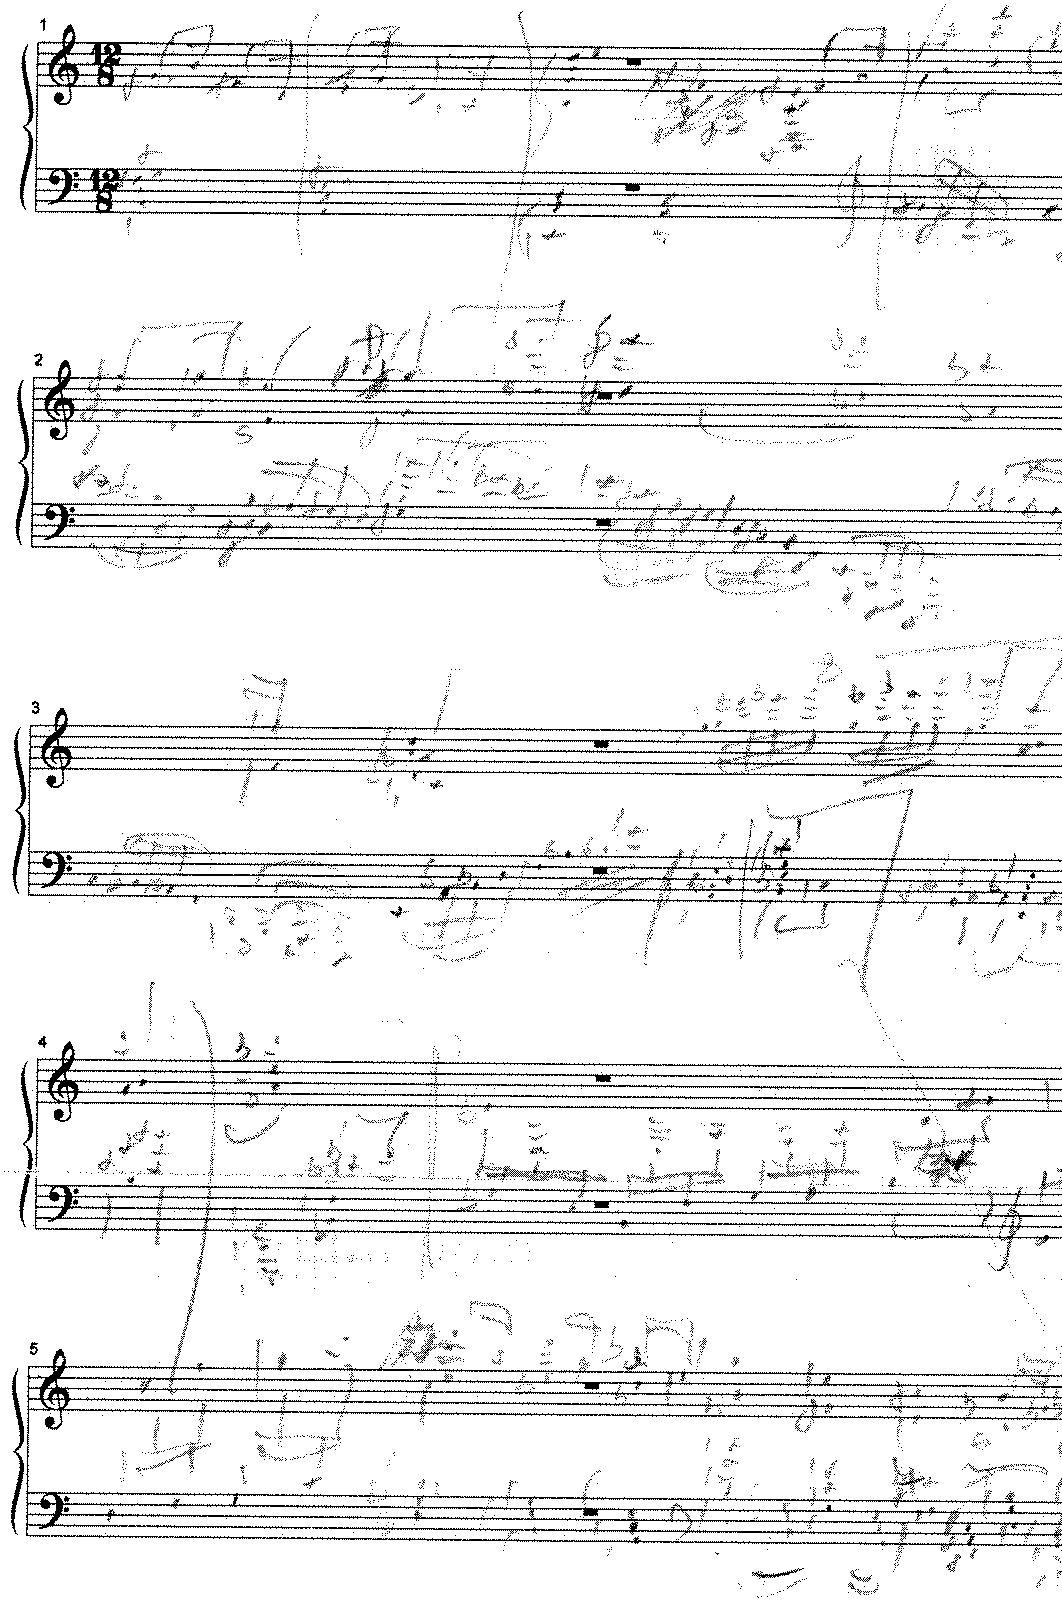 PMLP395376-Good Hope Sonata - Pencilled Manuscript Sample.pdf